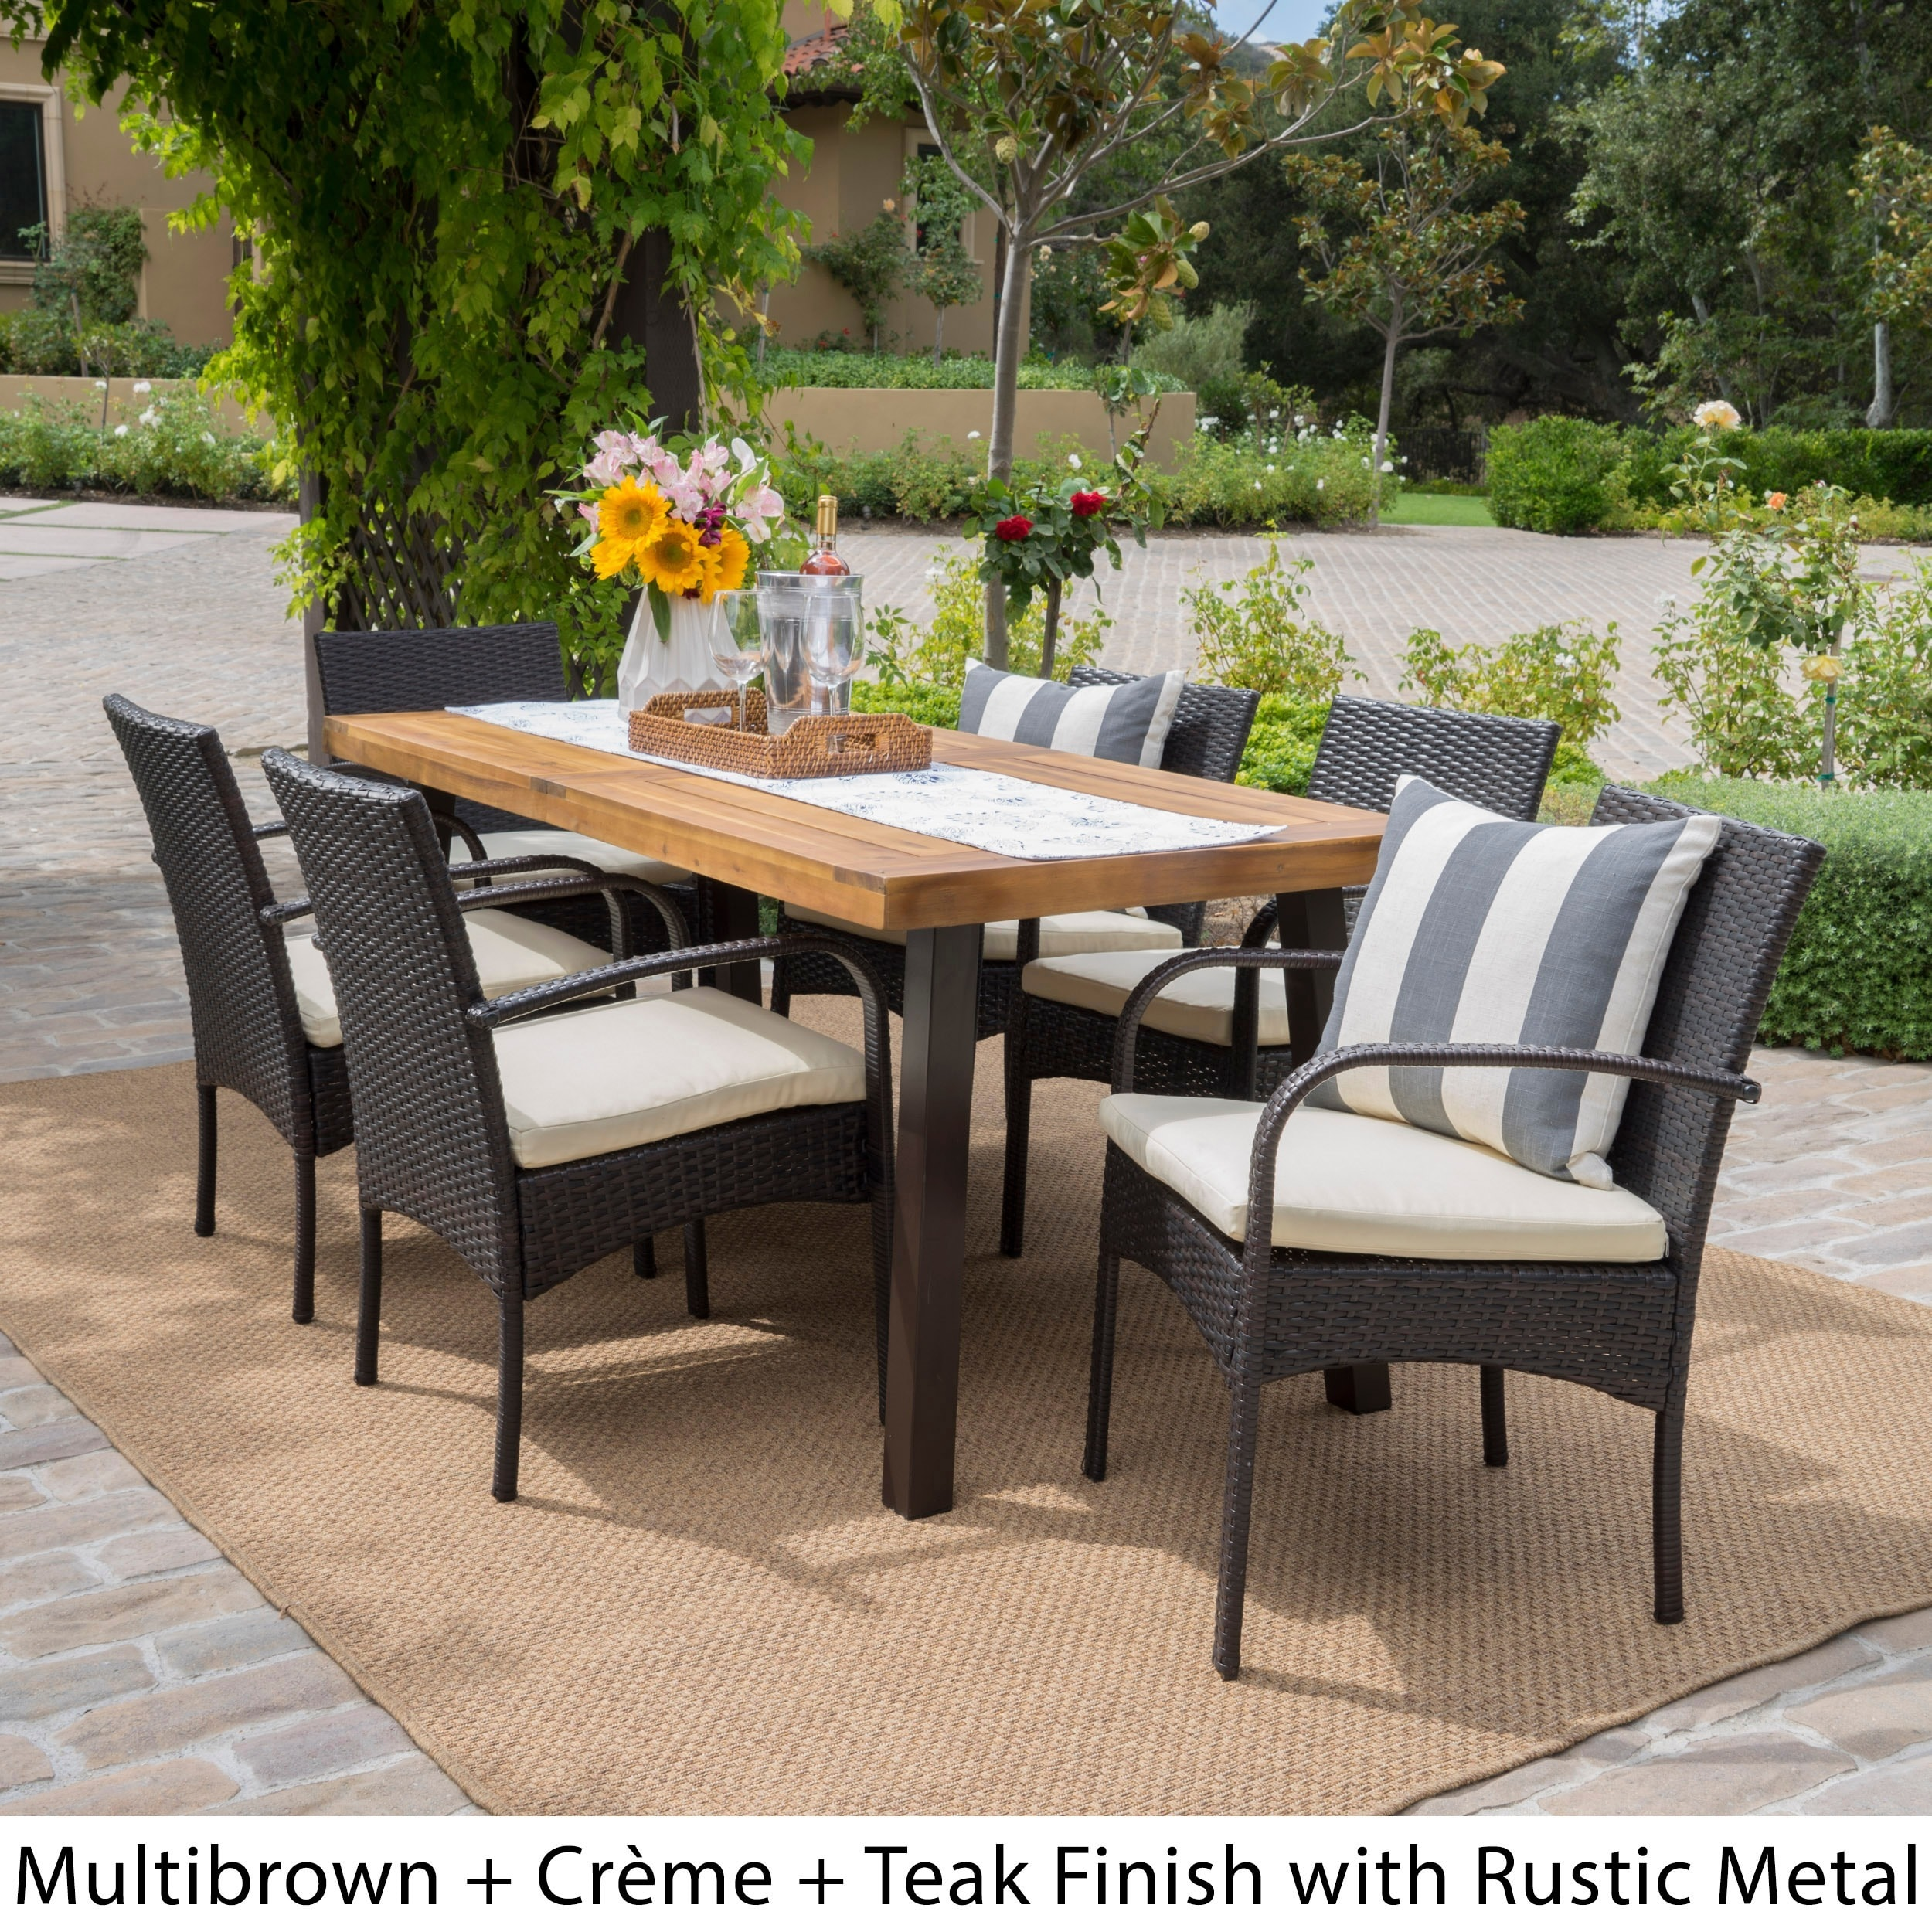 Shop bavaro outdoor 7 piece rectangle dining set with cushions by christopher knight home on sale free shipping today overstock 12298587